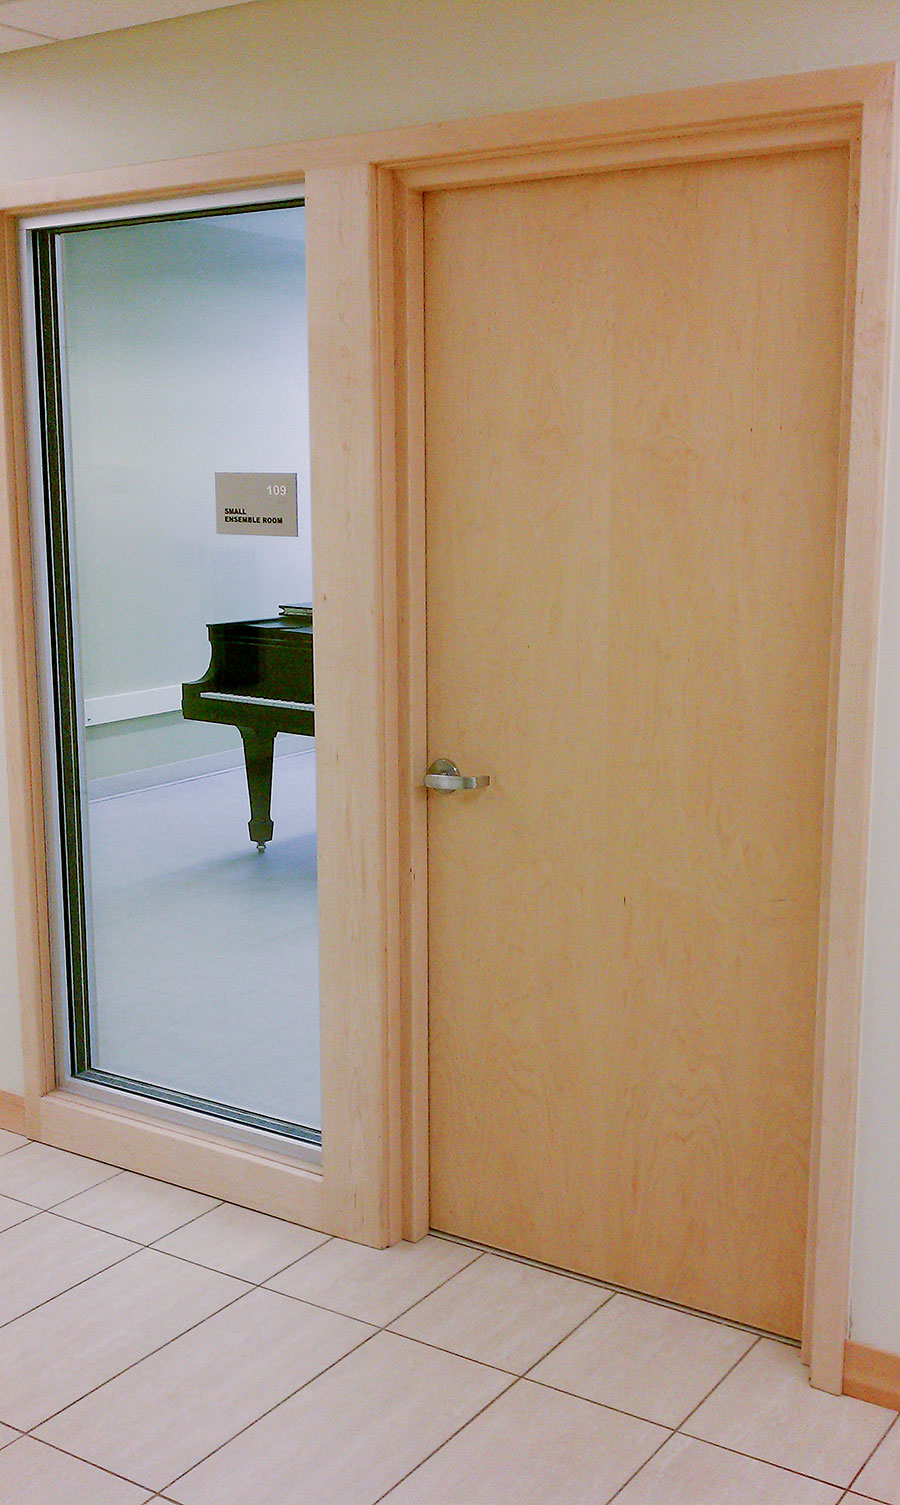 Soundproof interior sliding door help to separate the rooms